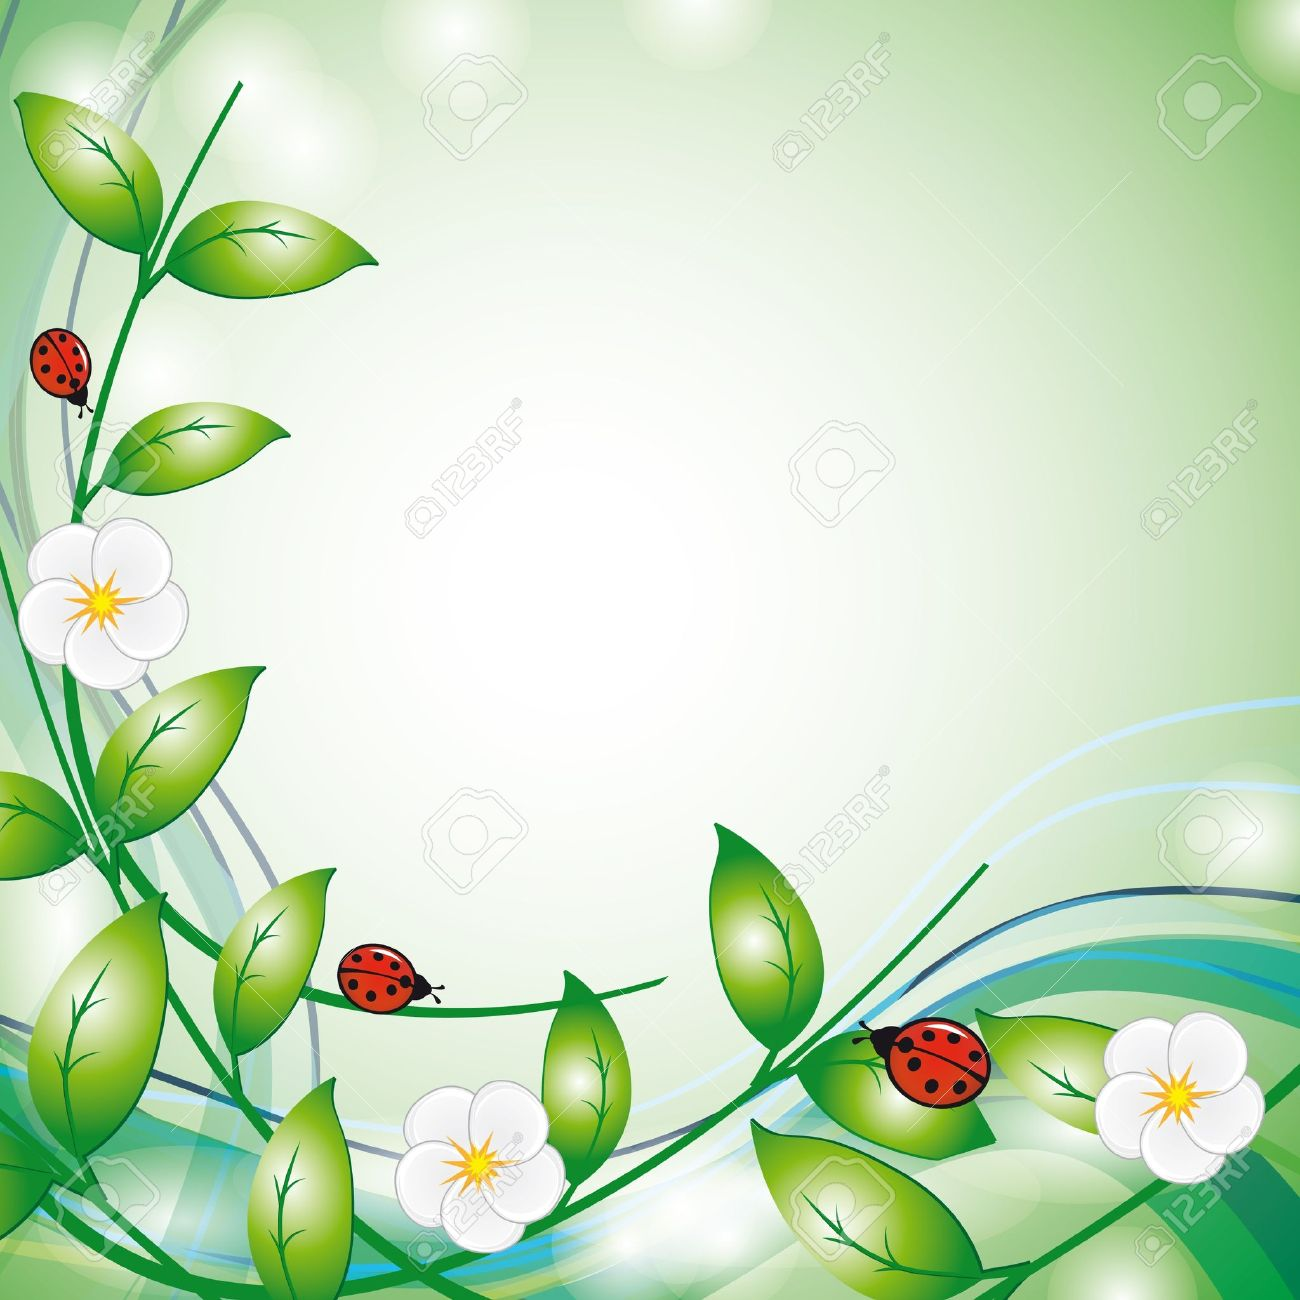 Summer background with flowers and ladybirds. Vector illustration Stock Vector - 9805756